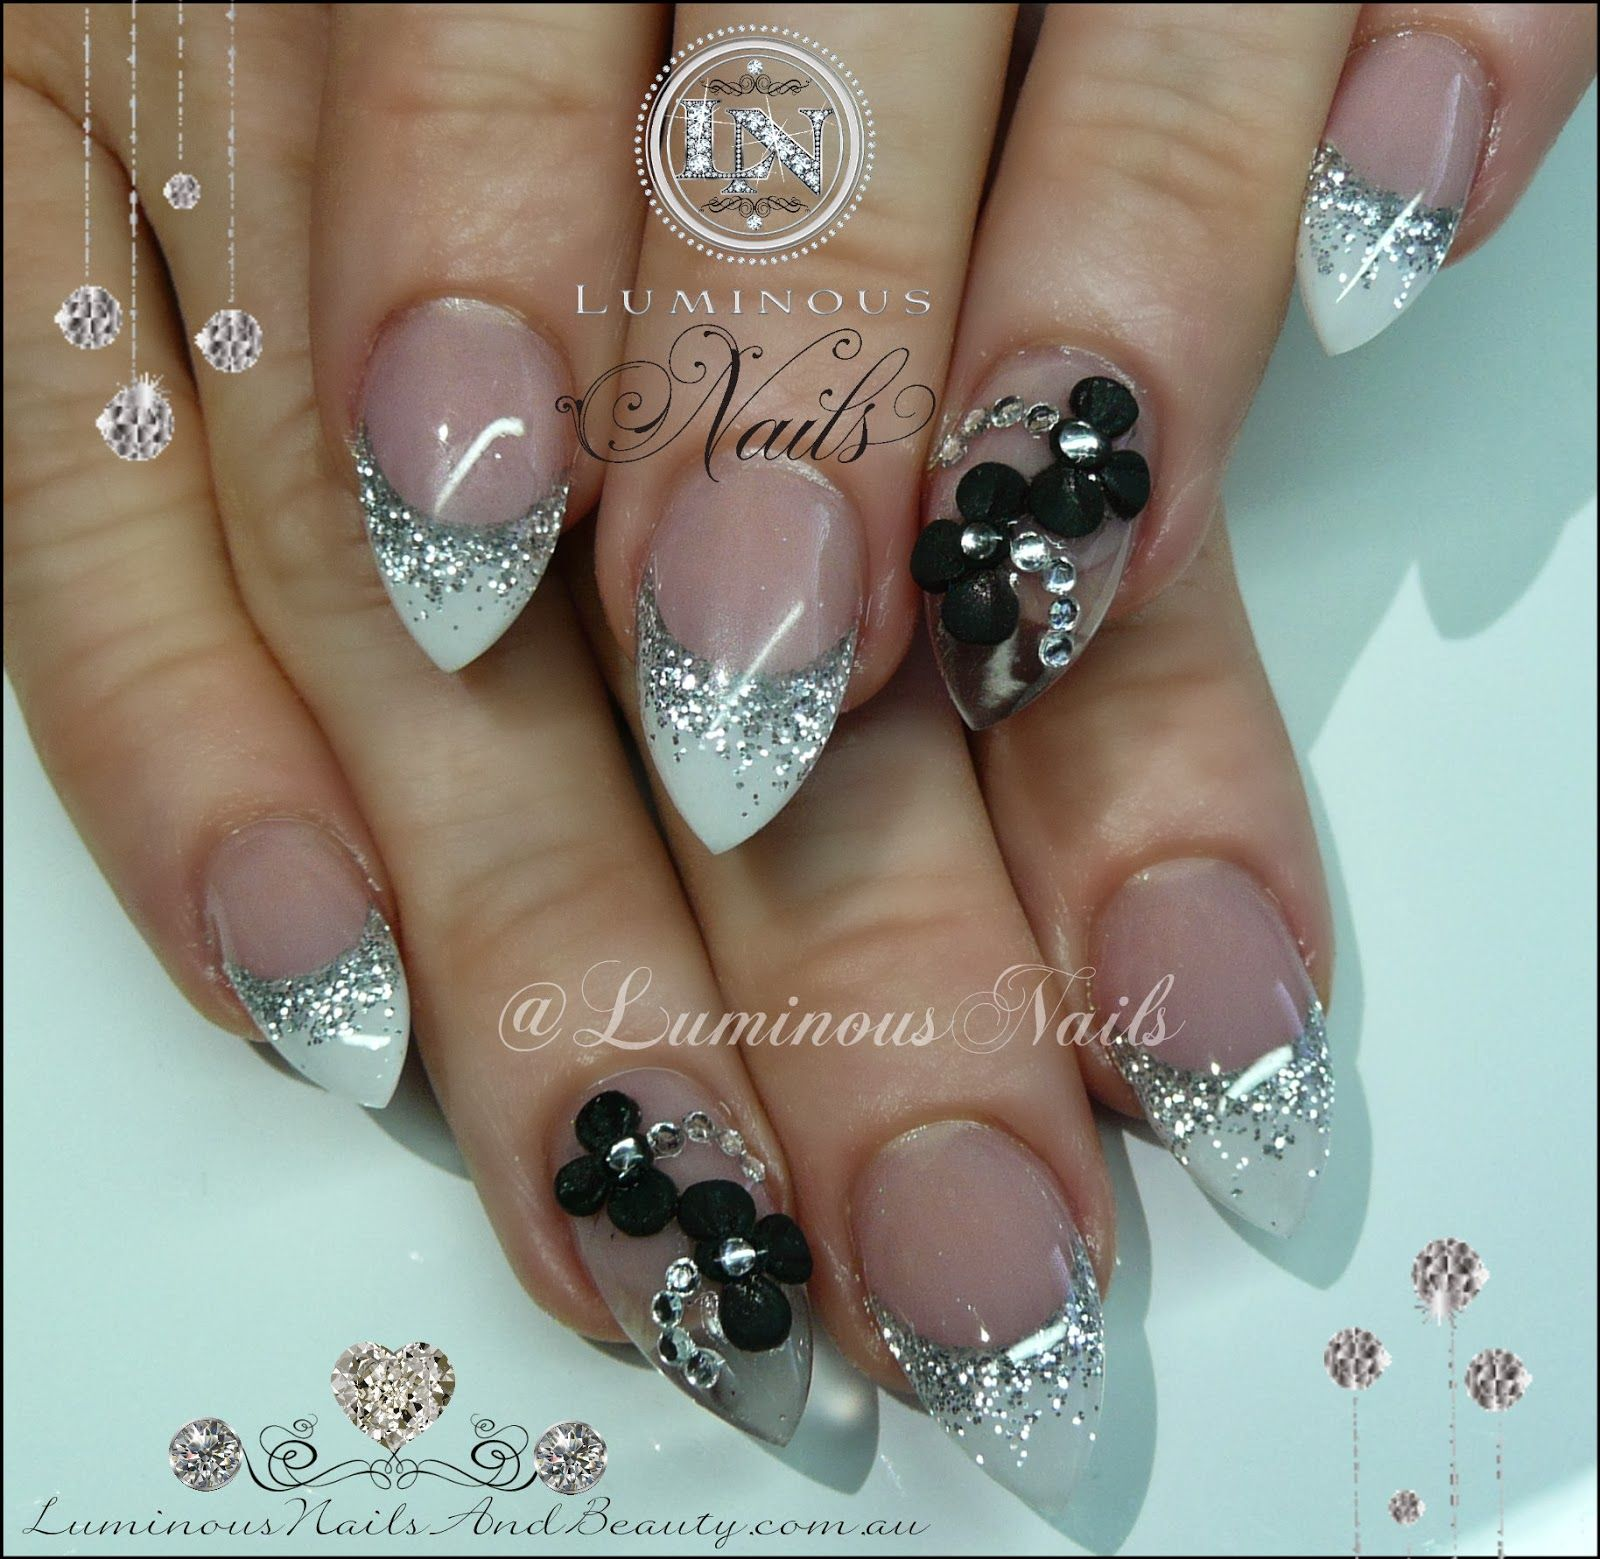 Luminous Nails: White & Silver Nails, Clear/Translucent Feature Nail ...